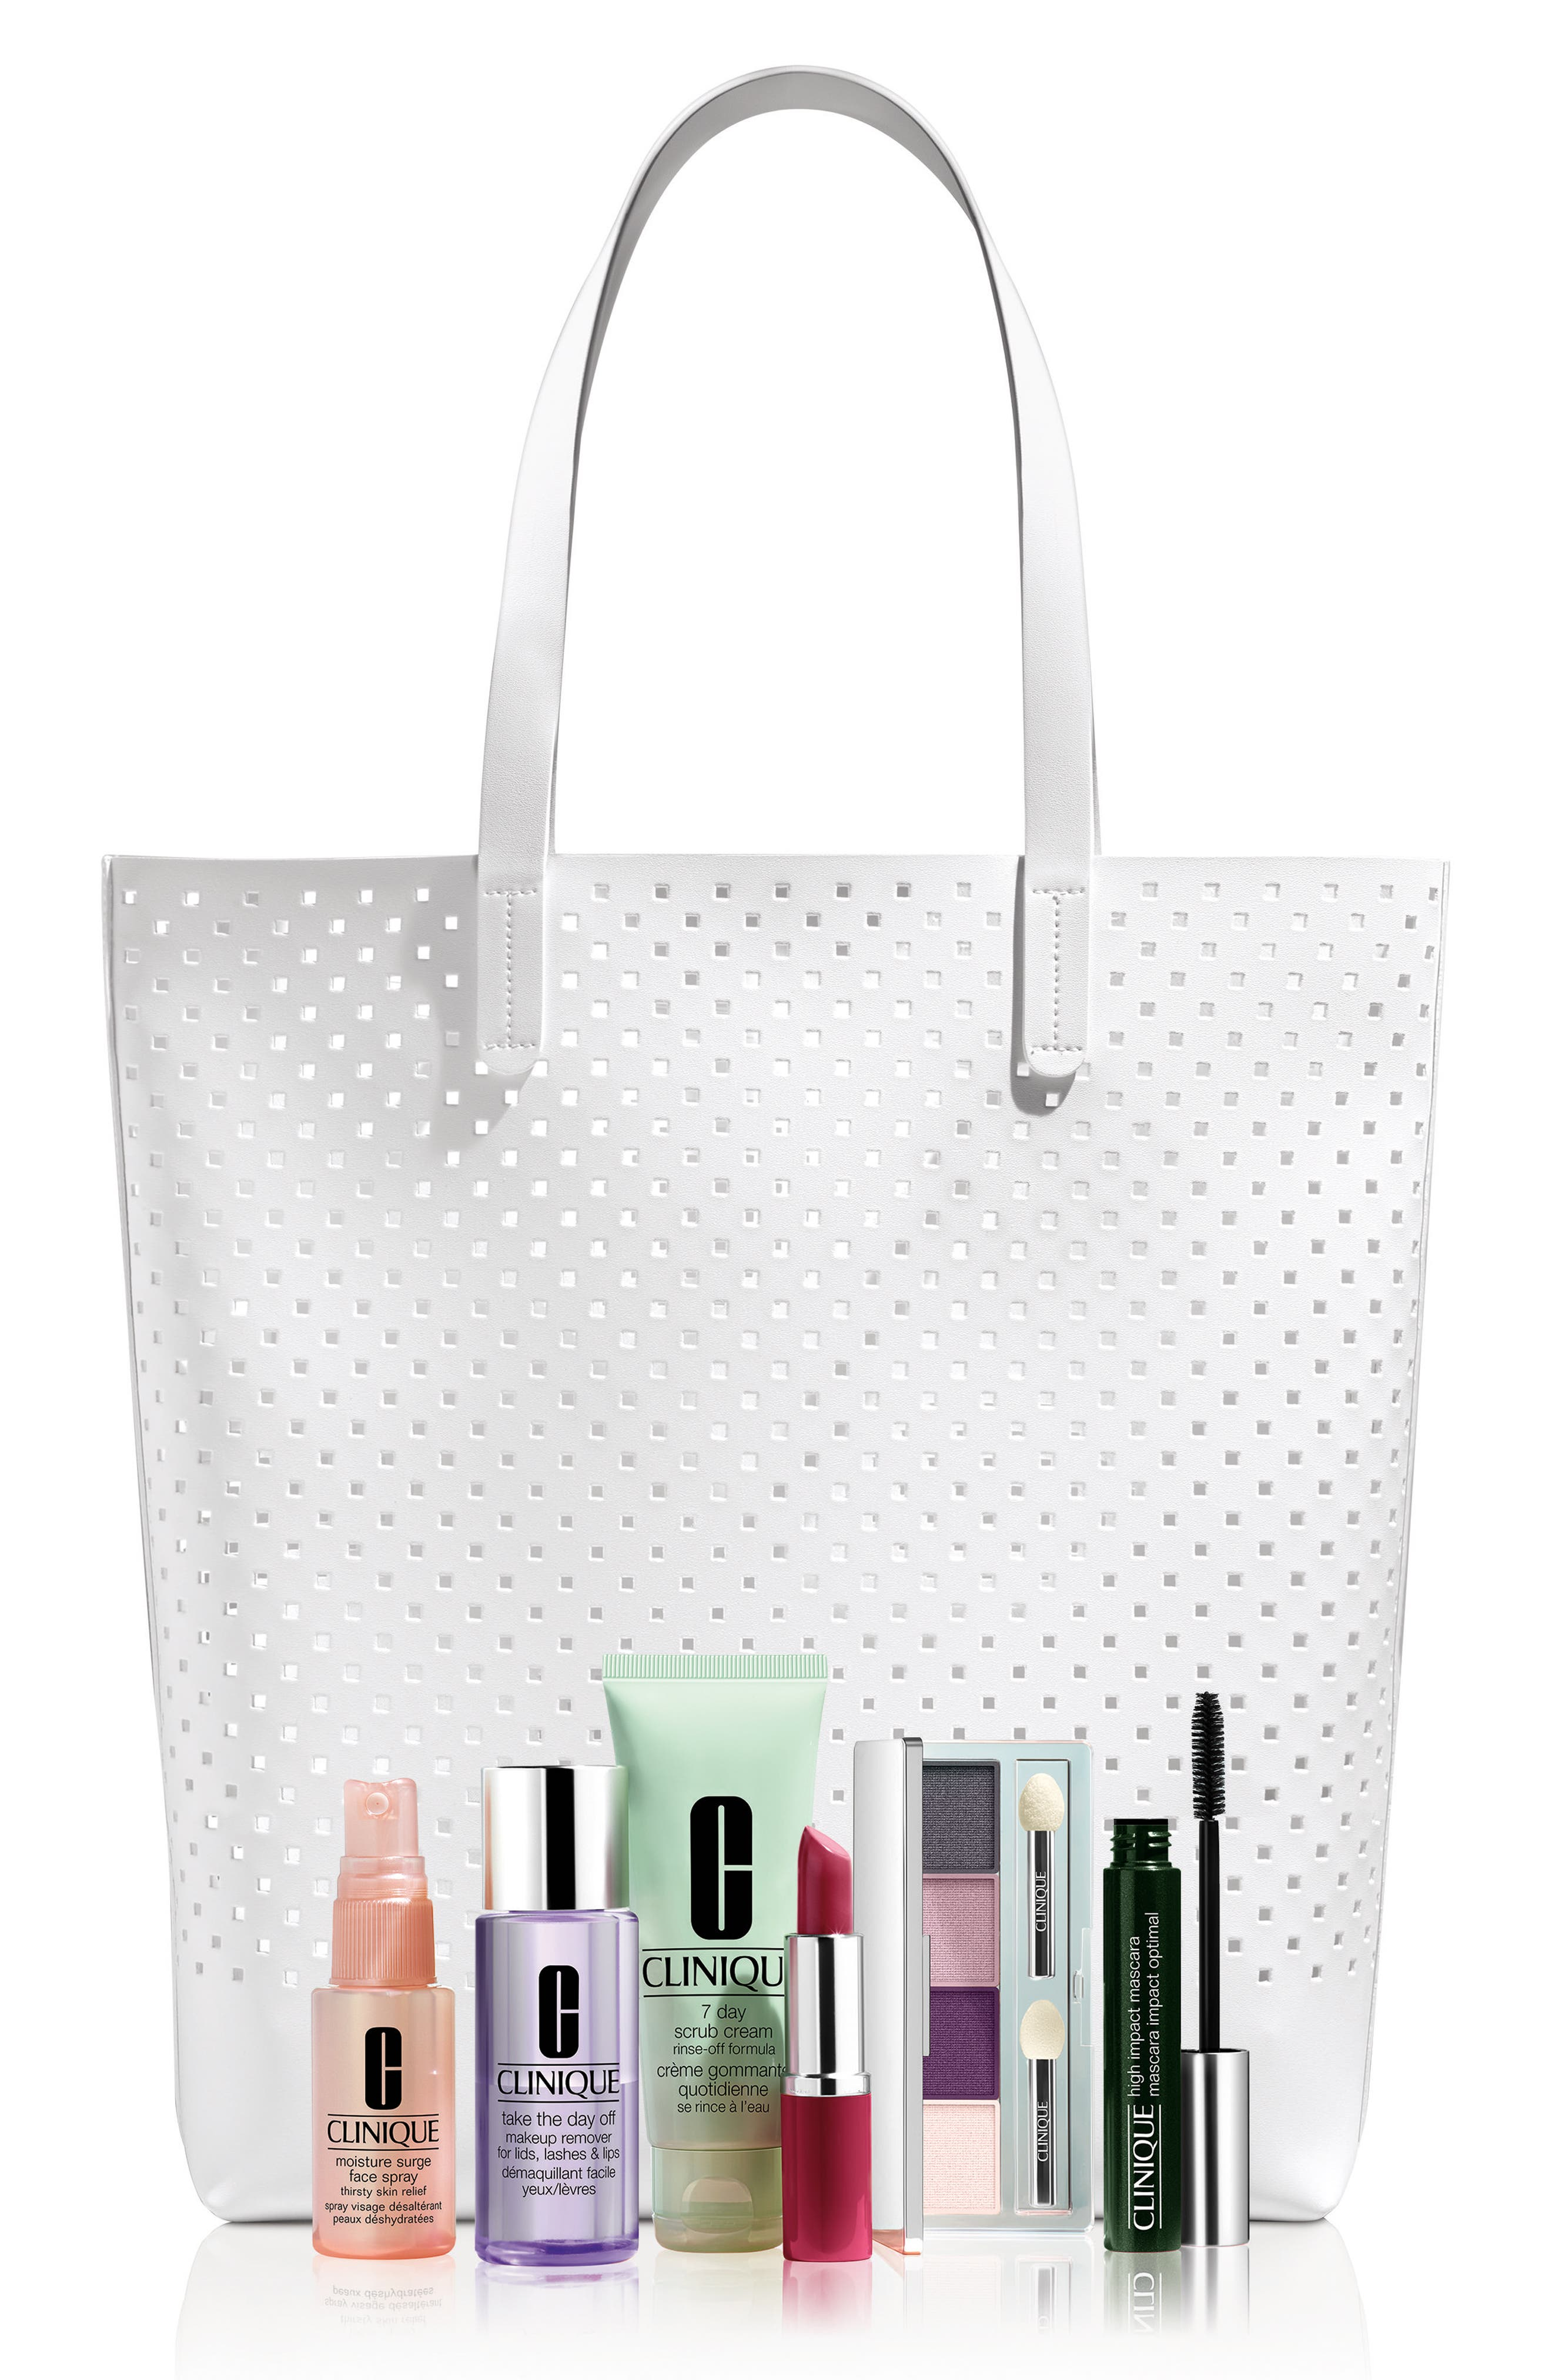 Clinique Summer Collection (Purchase with any Clinique Purchase)